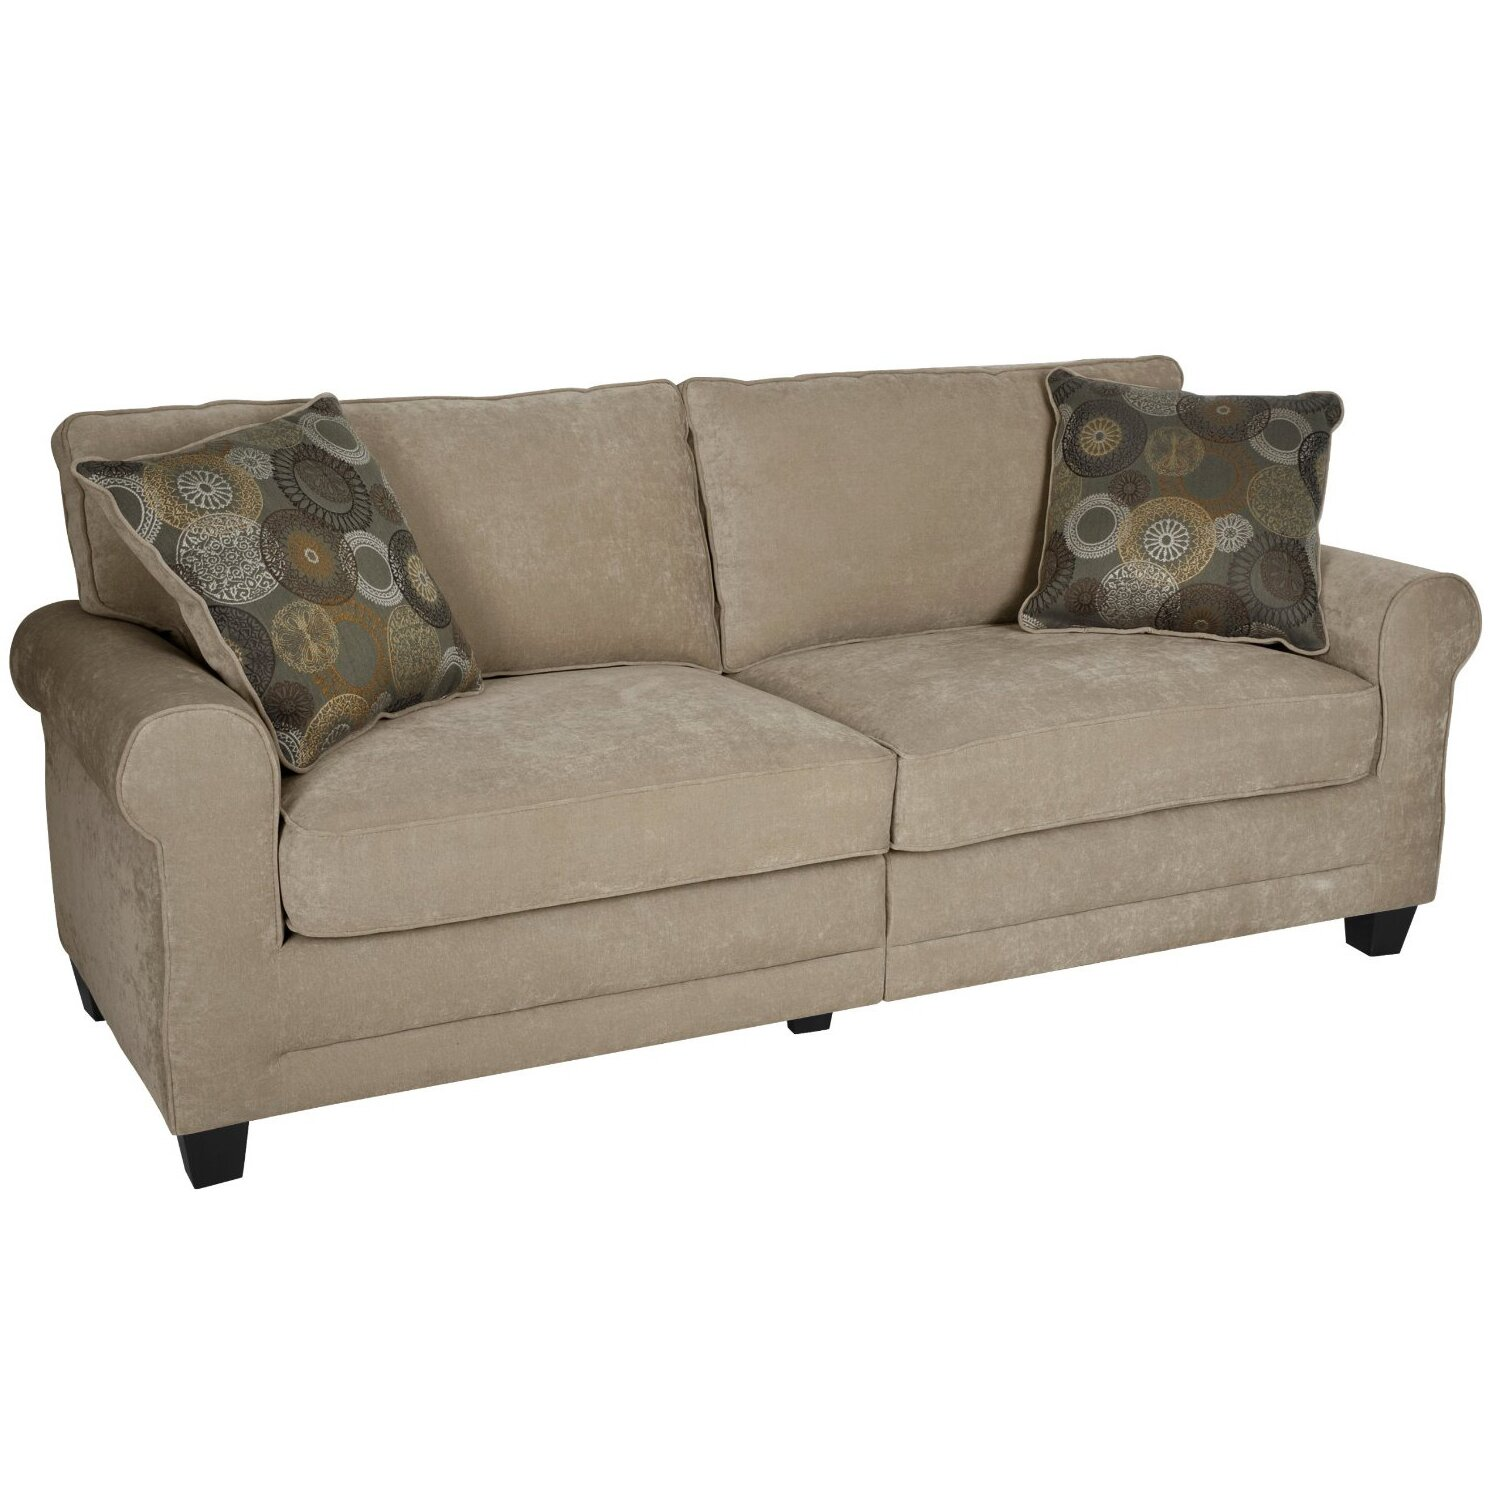 Serta At Home Serta Rta Copenhagen 73 Sofa Reviews Wayfair